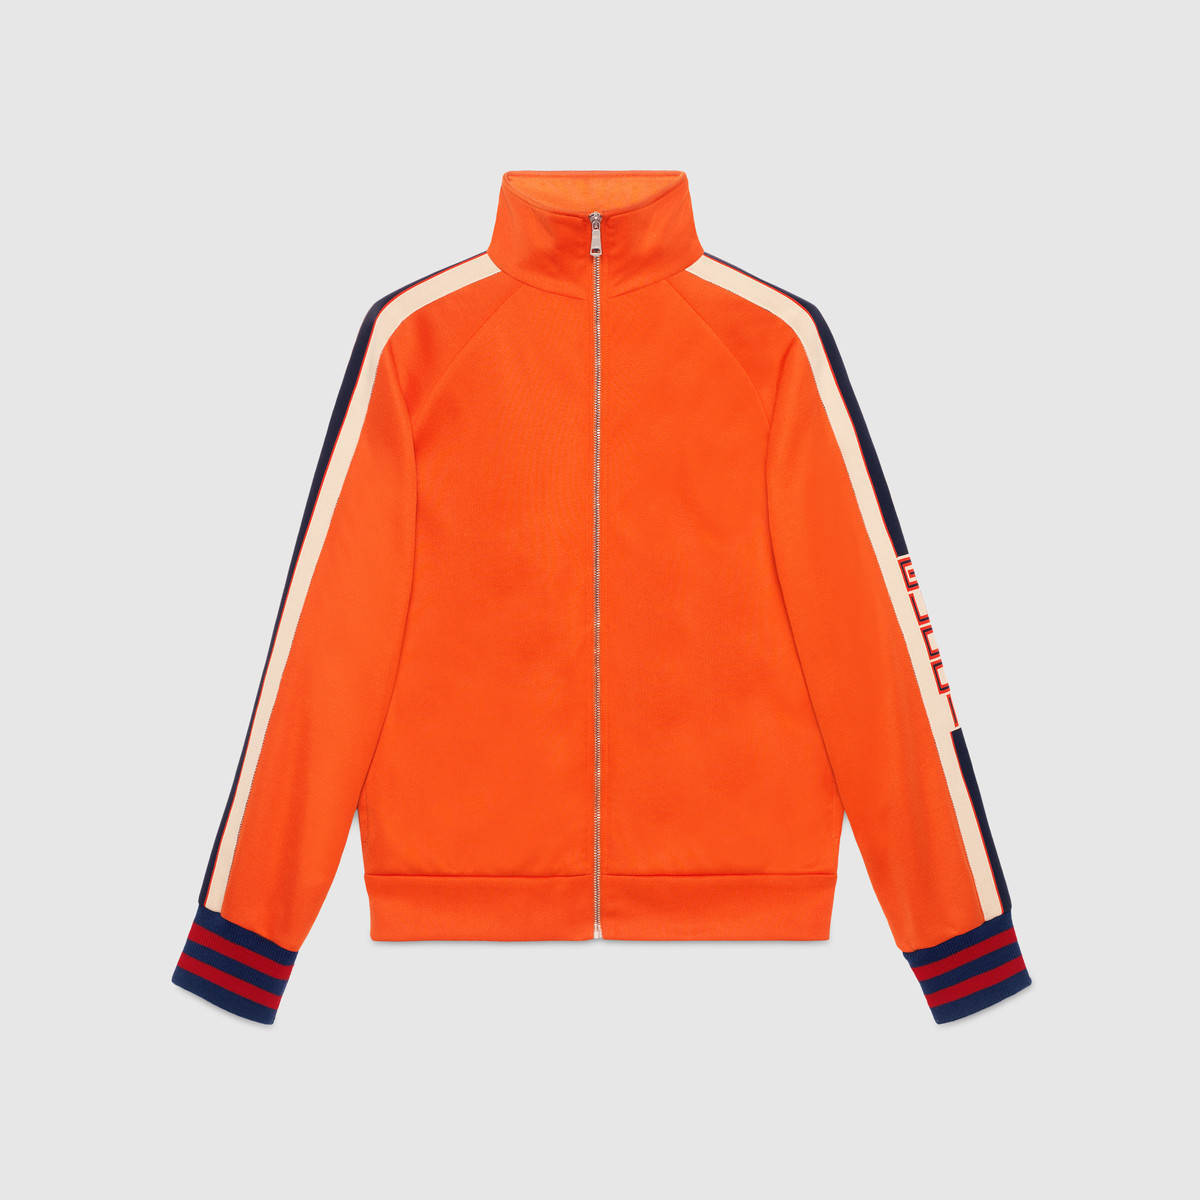 【数量限定】GUCCI Technical jersey jacket Orange